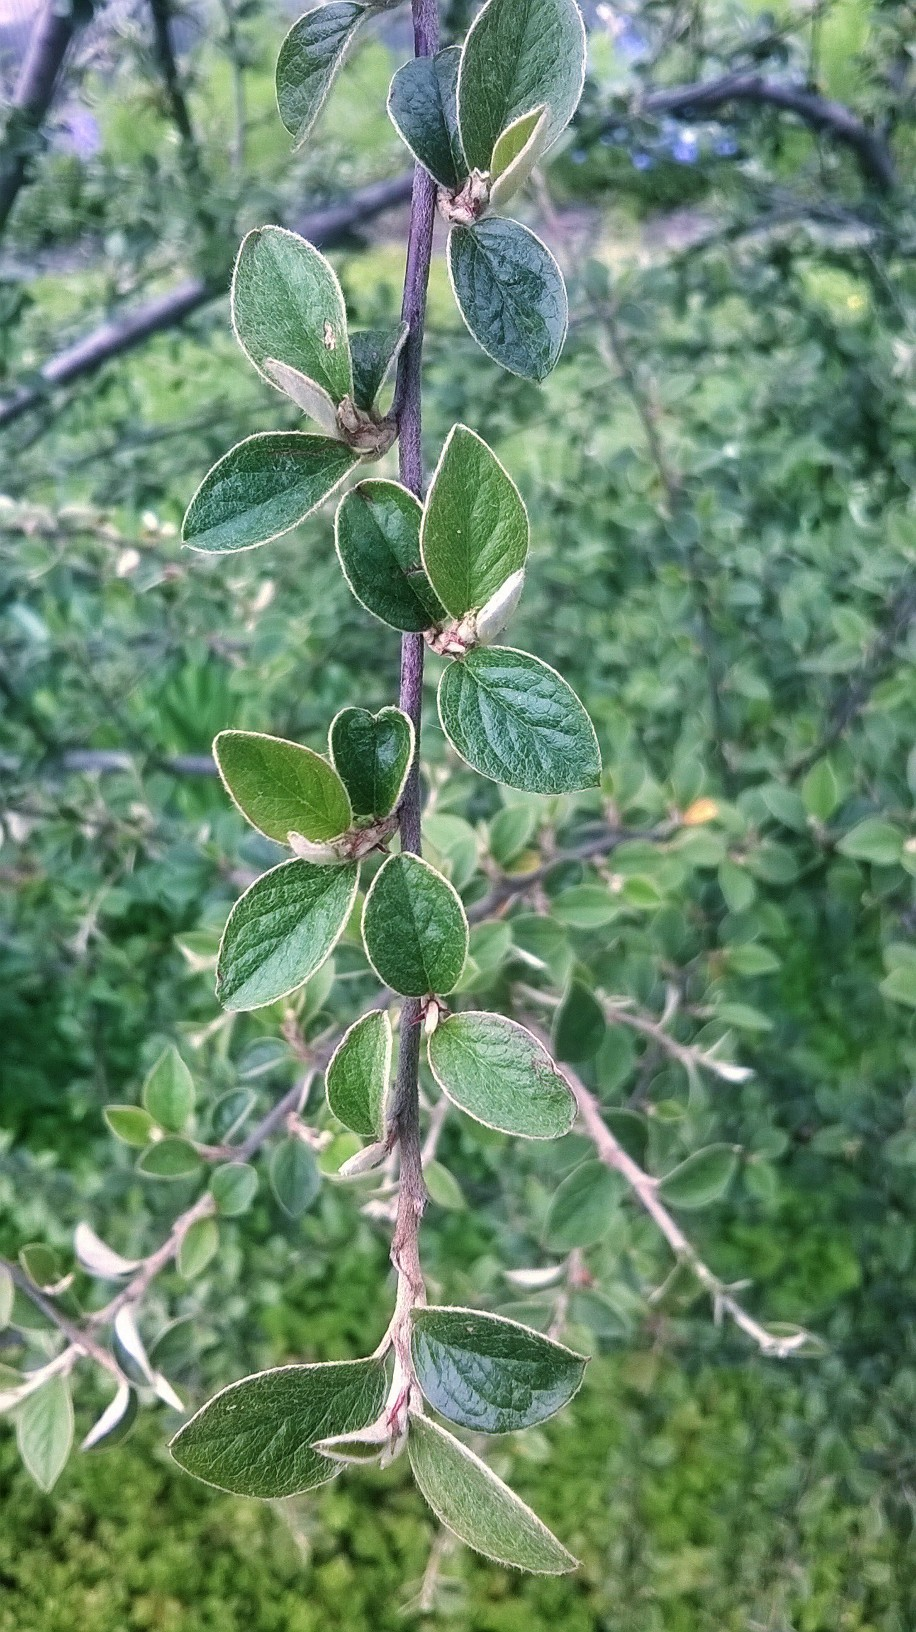 Zoomed picture of a twig with regularly spaced leaves